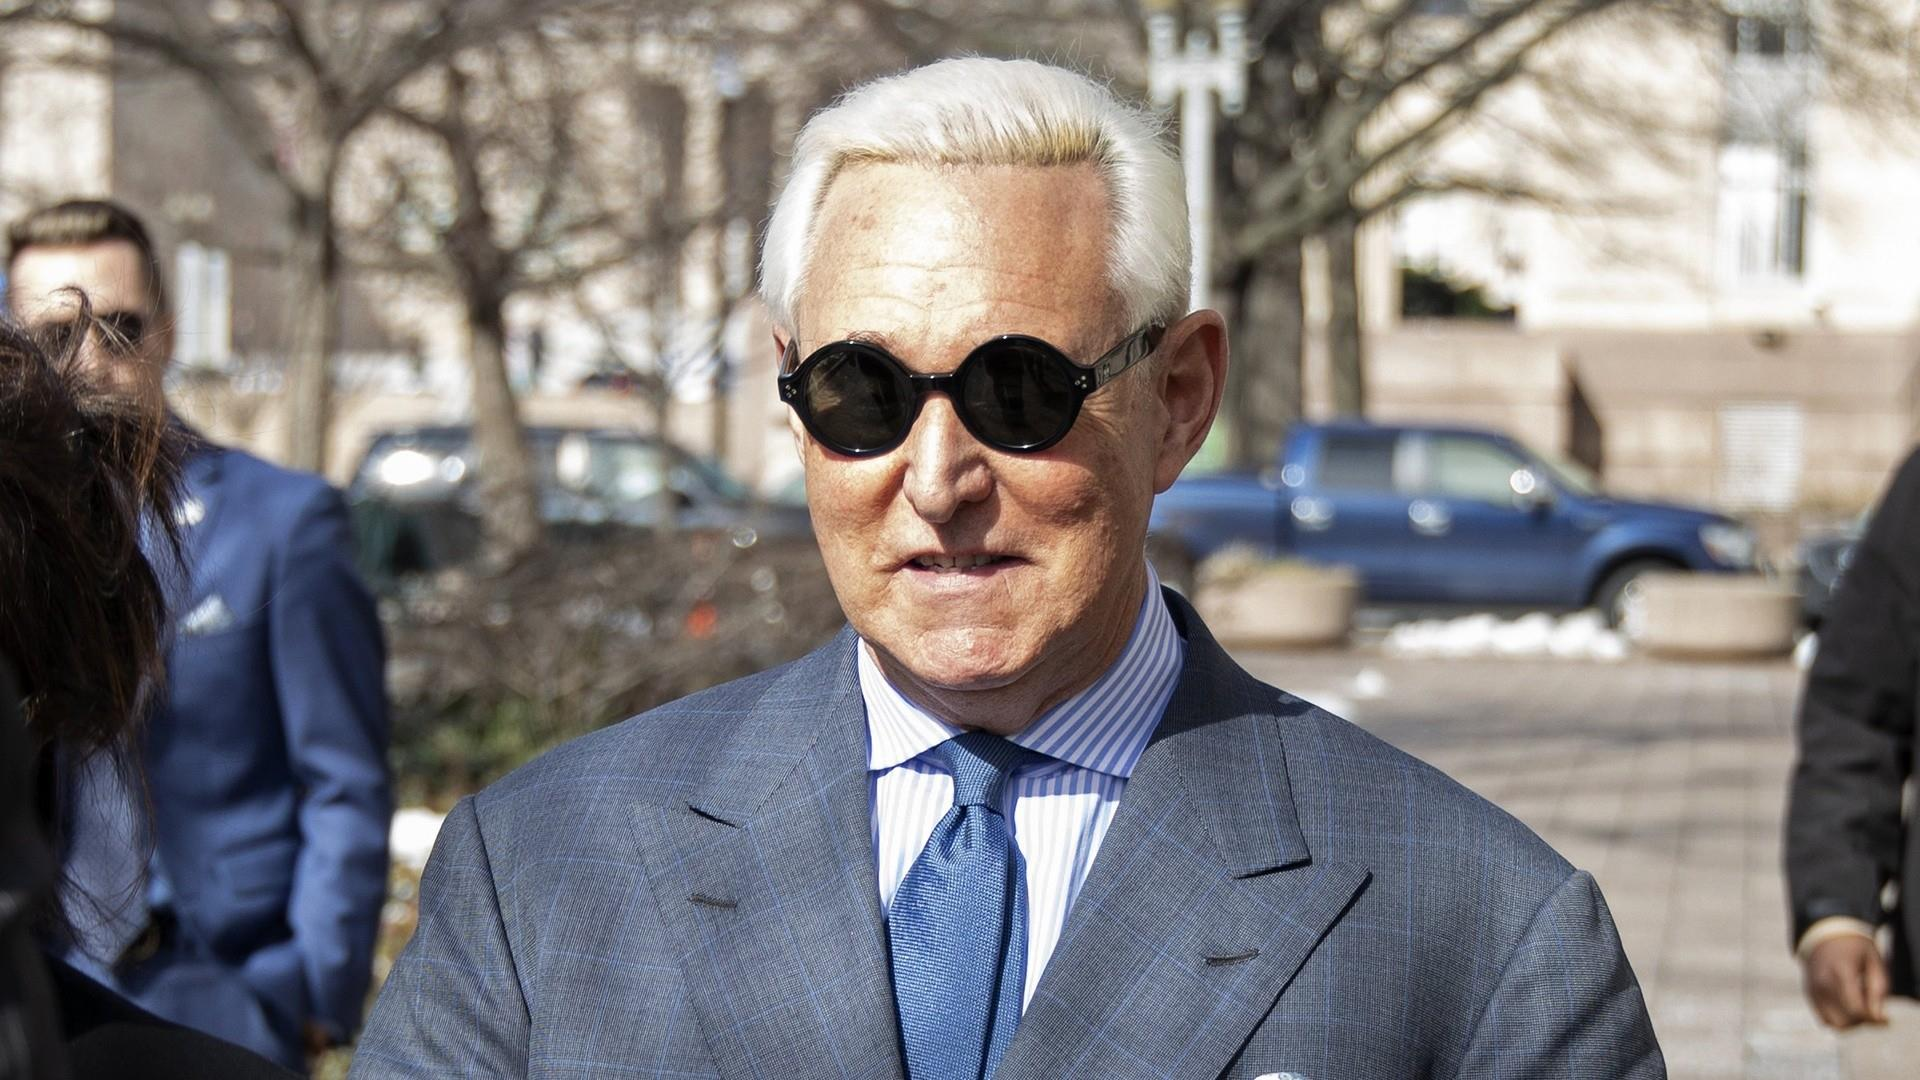 Judge bars Roger Stone from speaking publicly about case